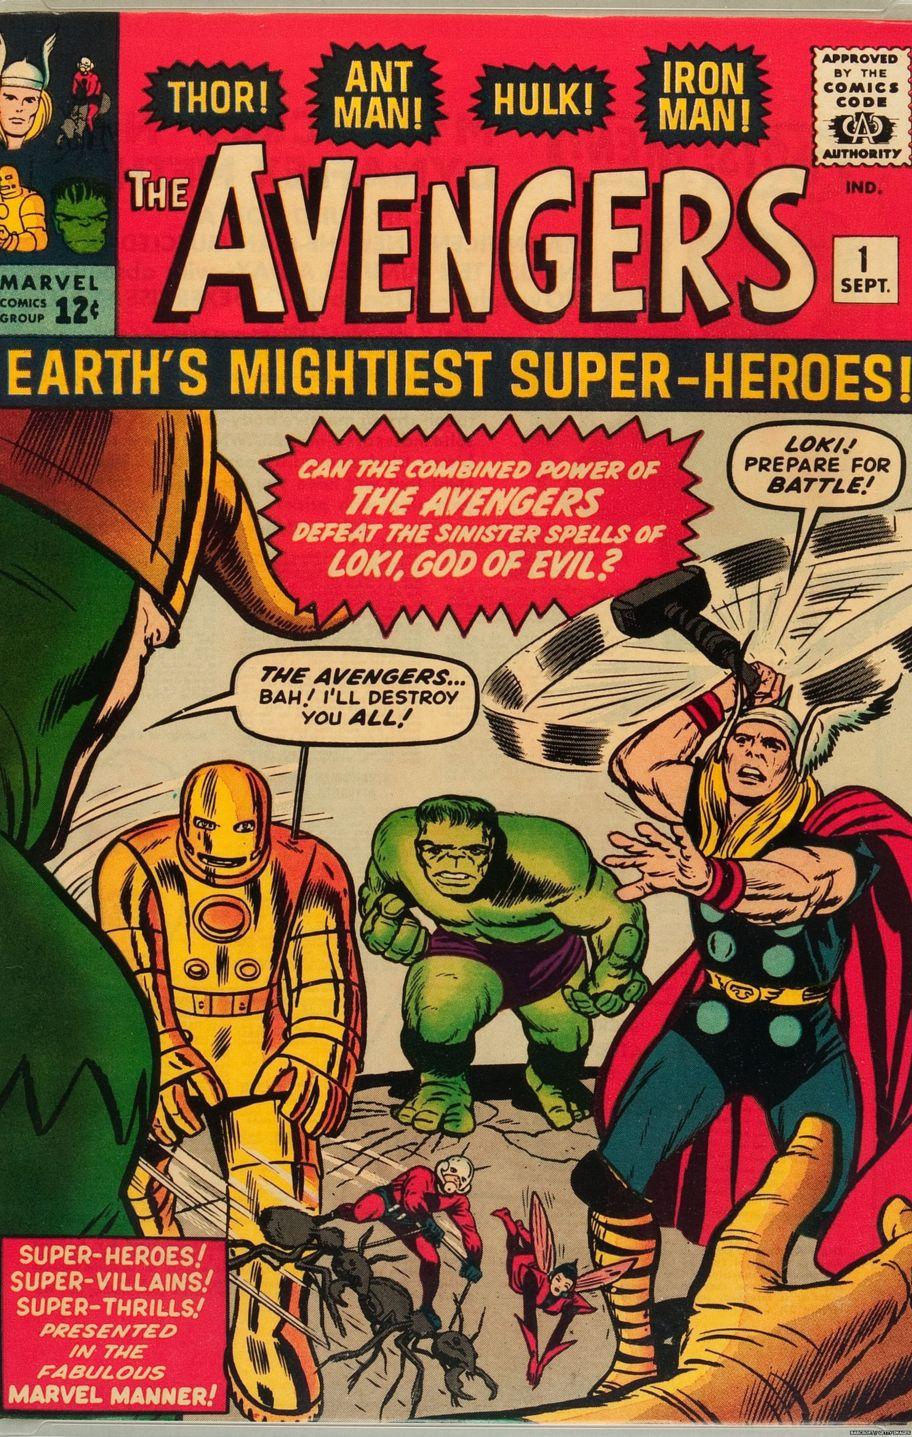 Superhero creator Stan Lee has died  Check out 5 of his